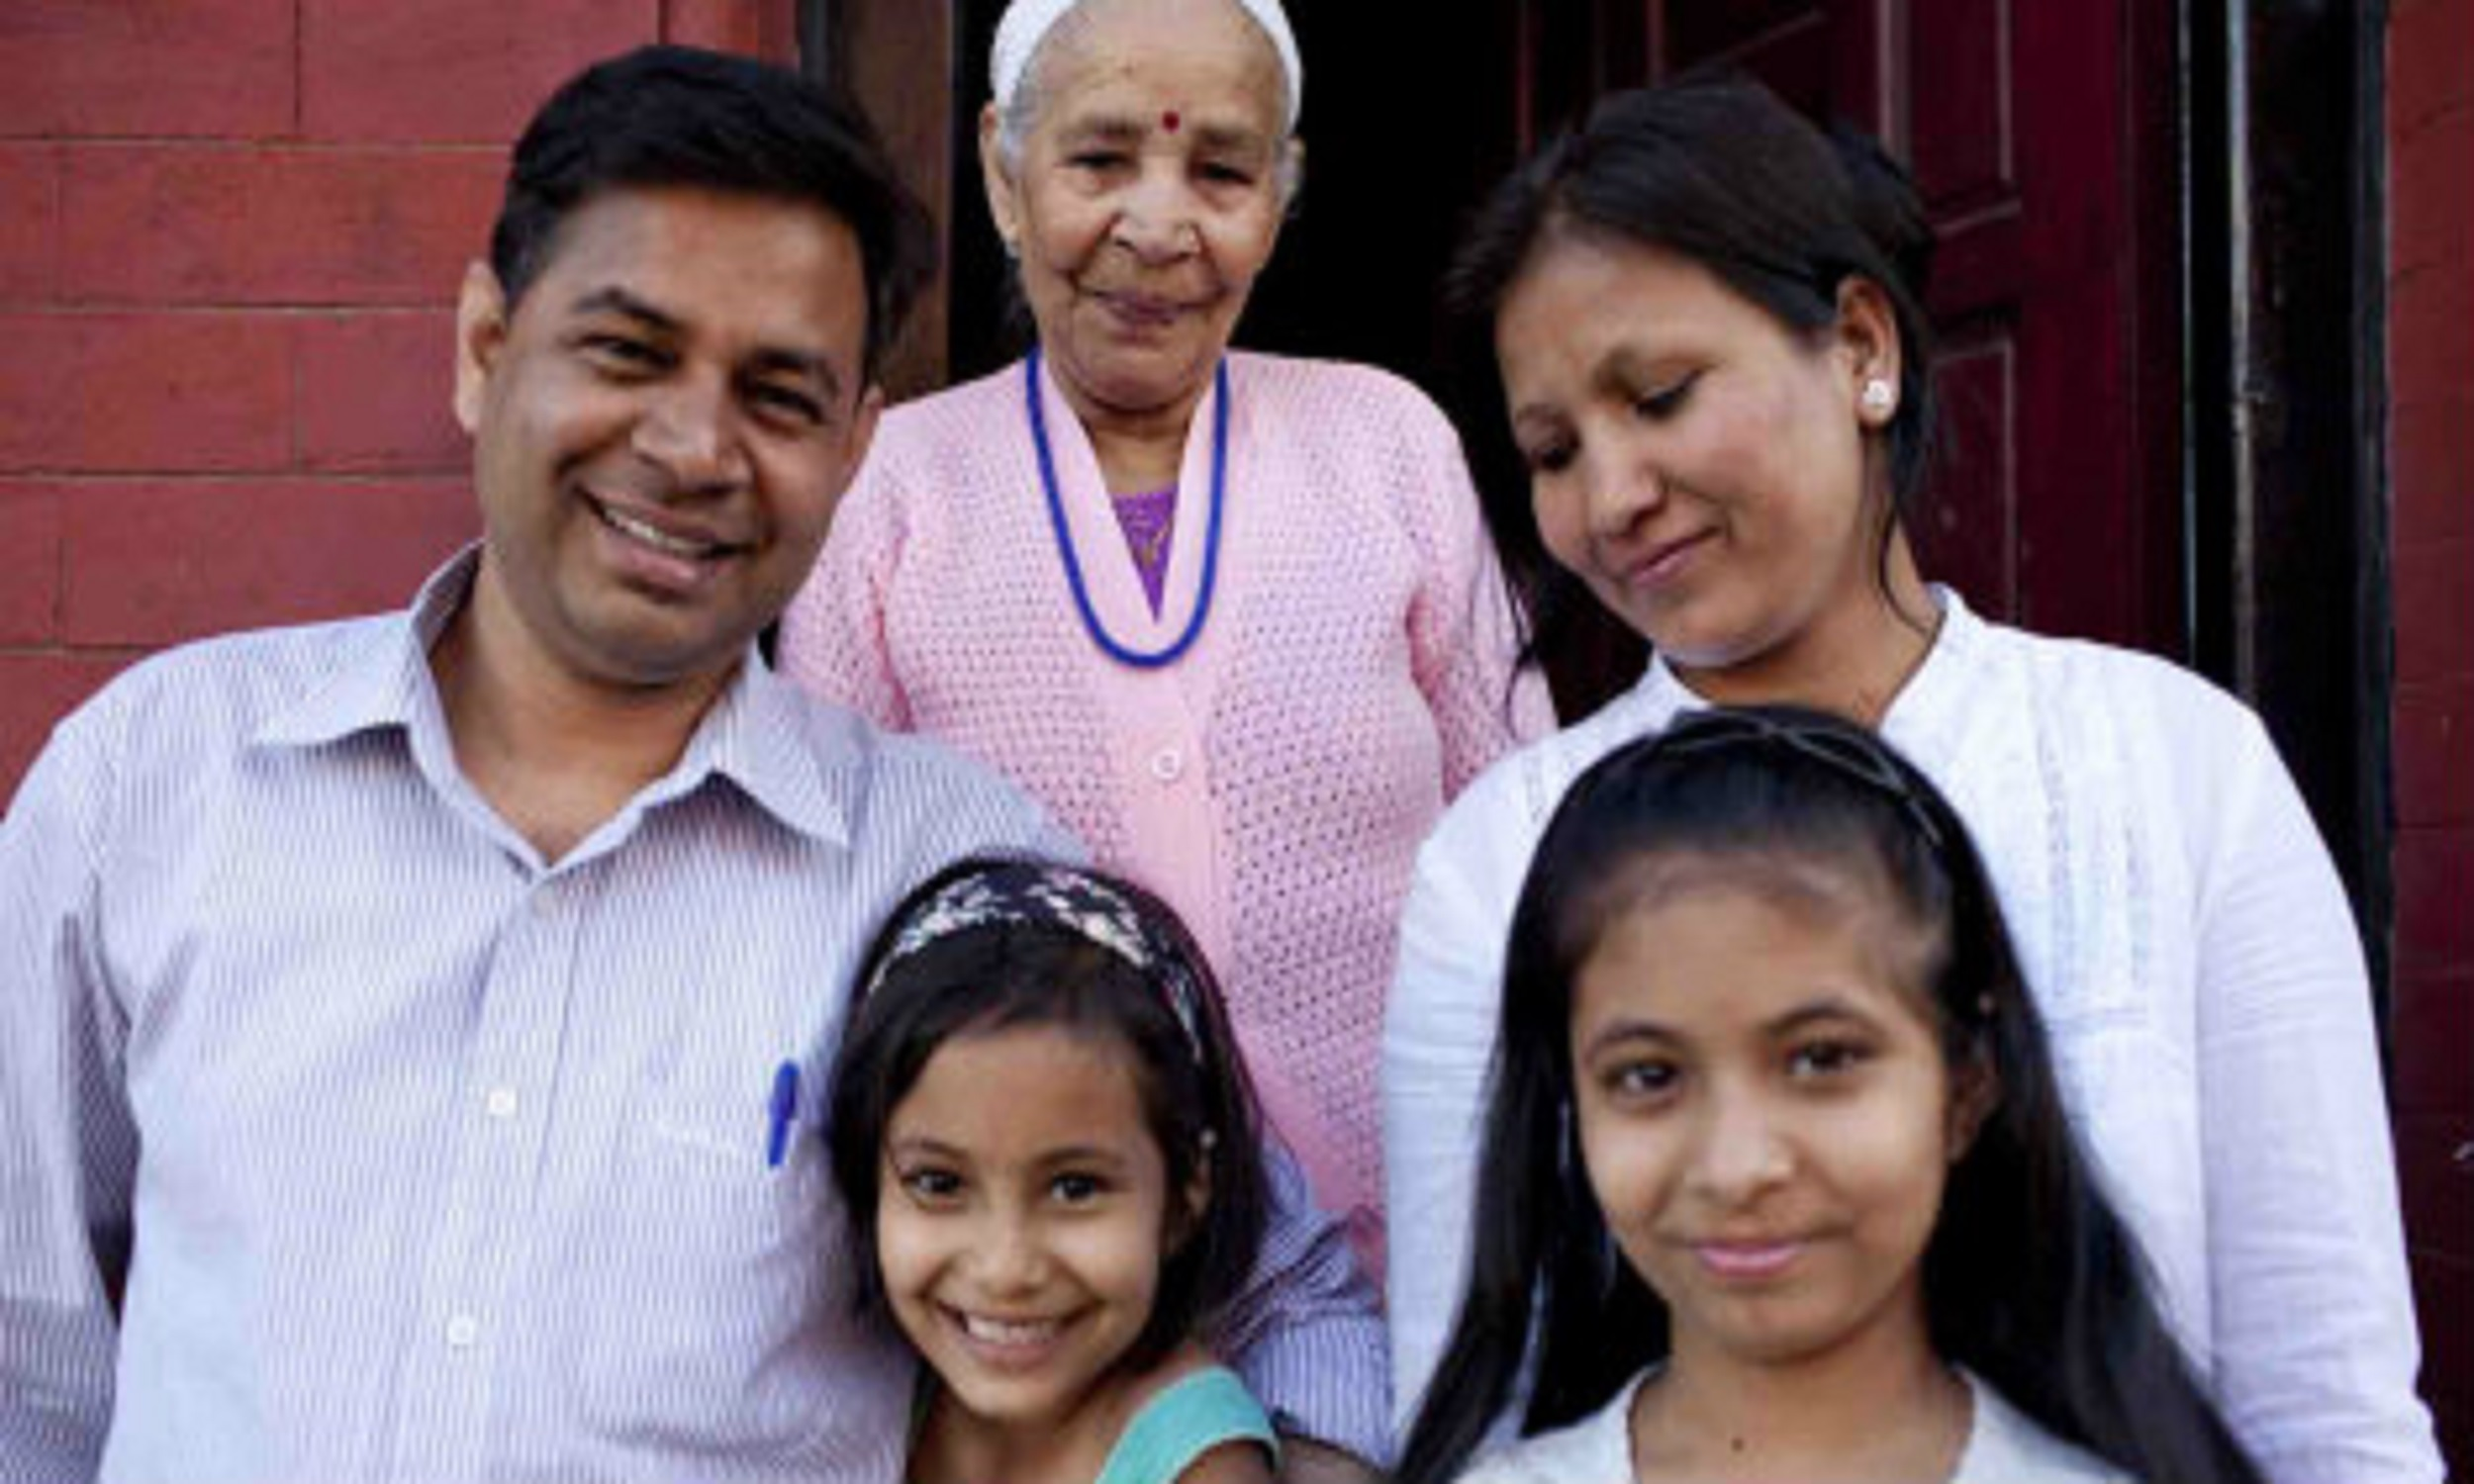 Prem, a refugee from Bhutan, with his family outside his house